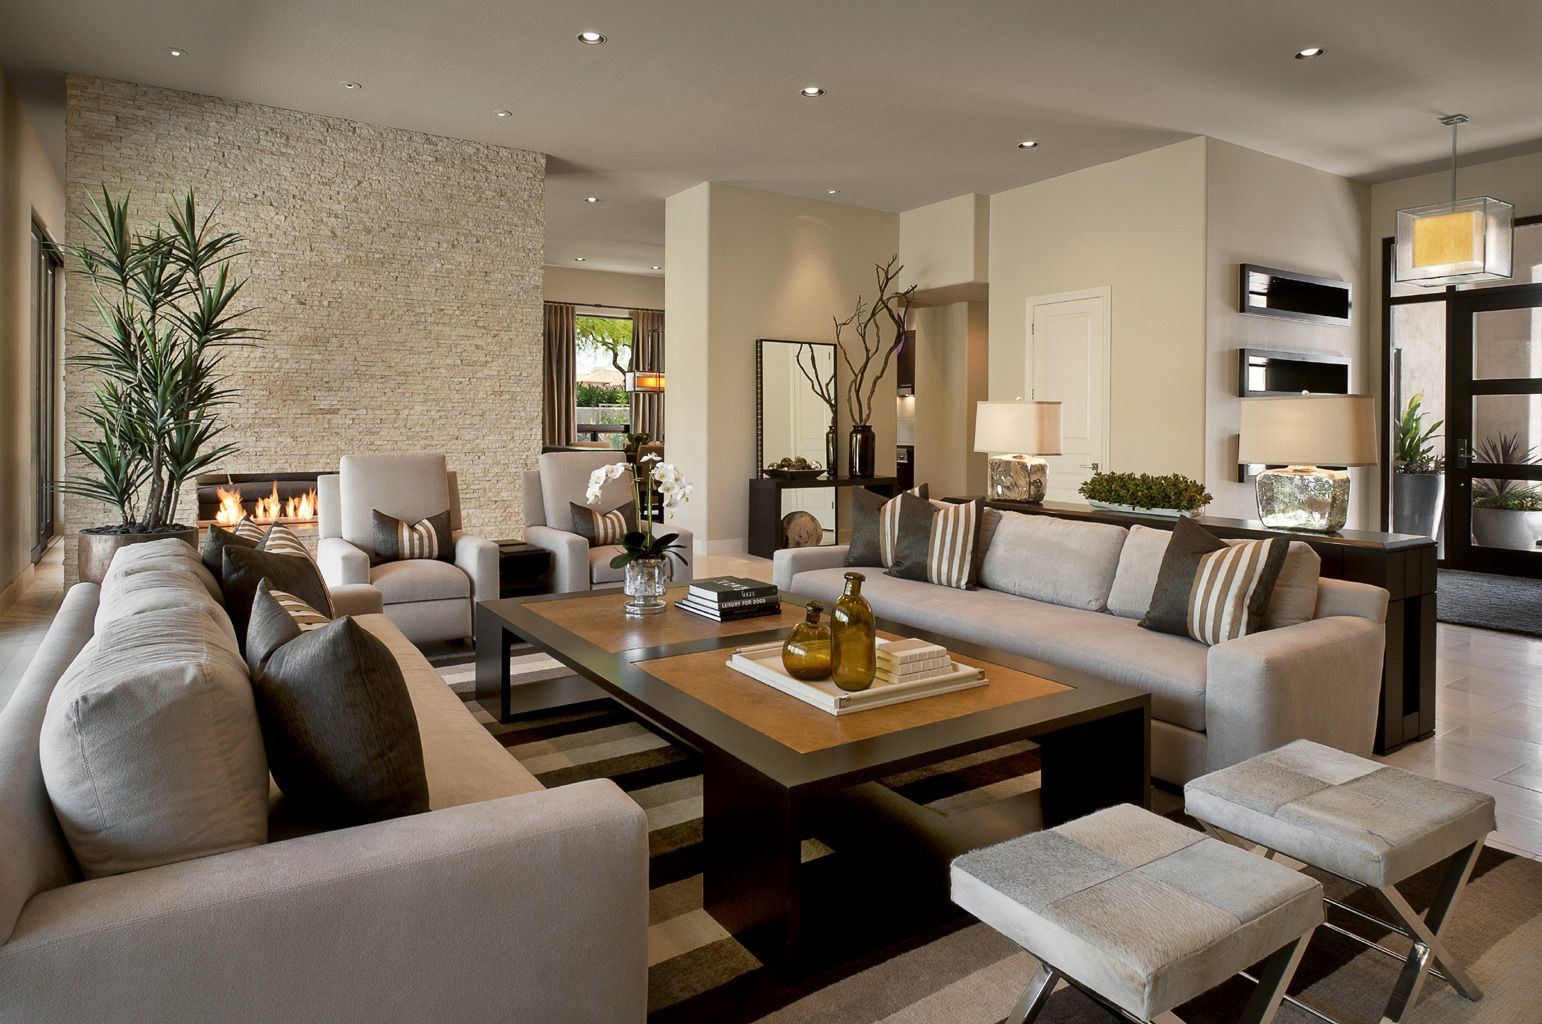 Gorgeous Contemporary Living Room With Fireplace And Sofas Gorgeous Design Ideas For Large Living Rooms Inspiration Design